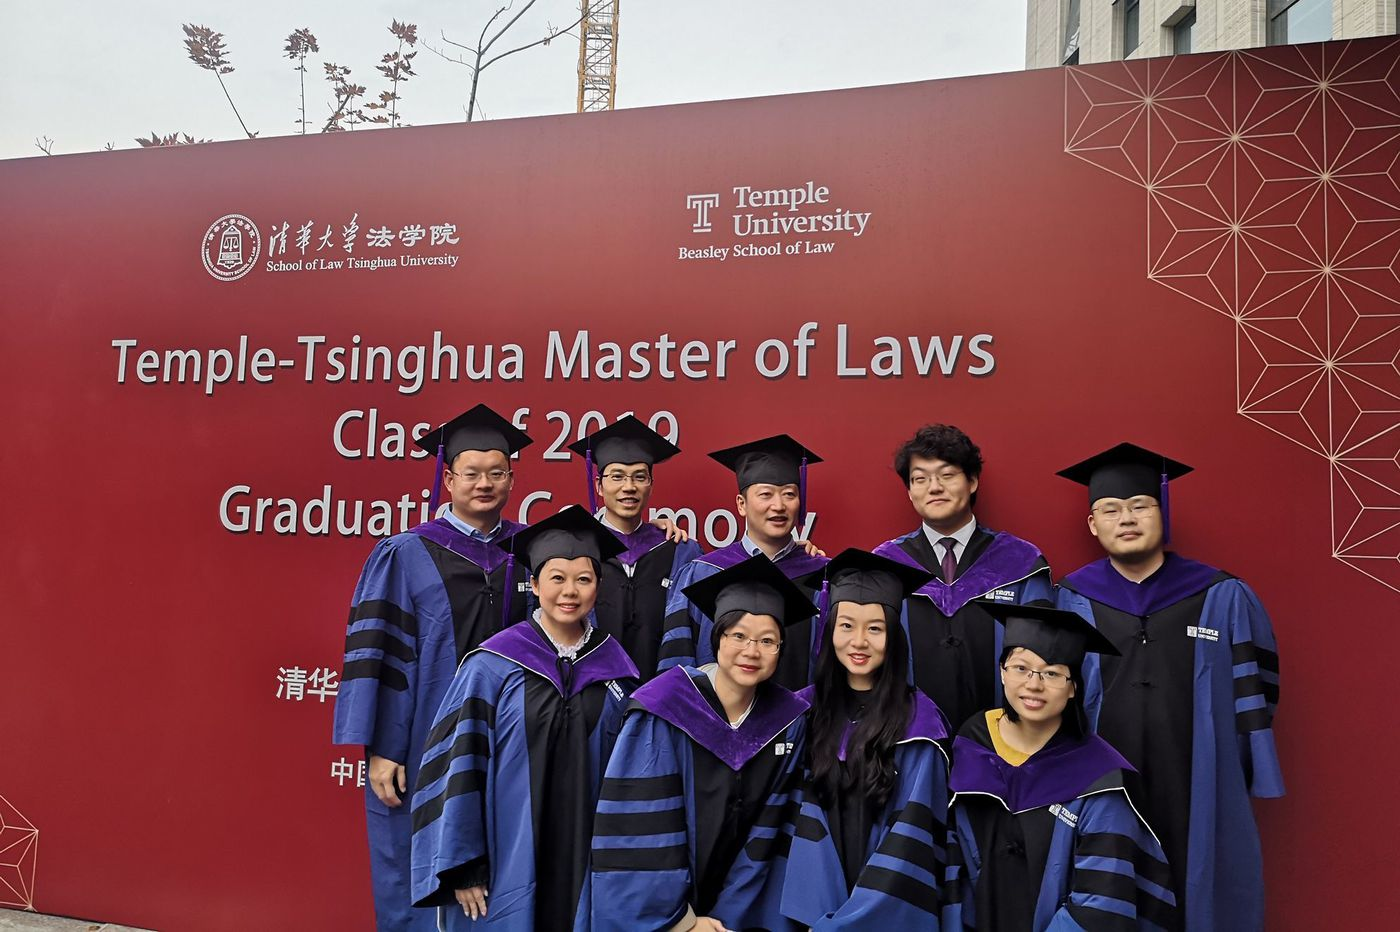 20 years in, Temple's program in China teaches 'rule of law' amid tensions between Beijing and Washington